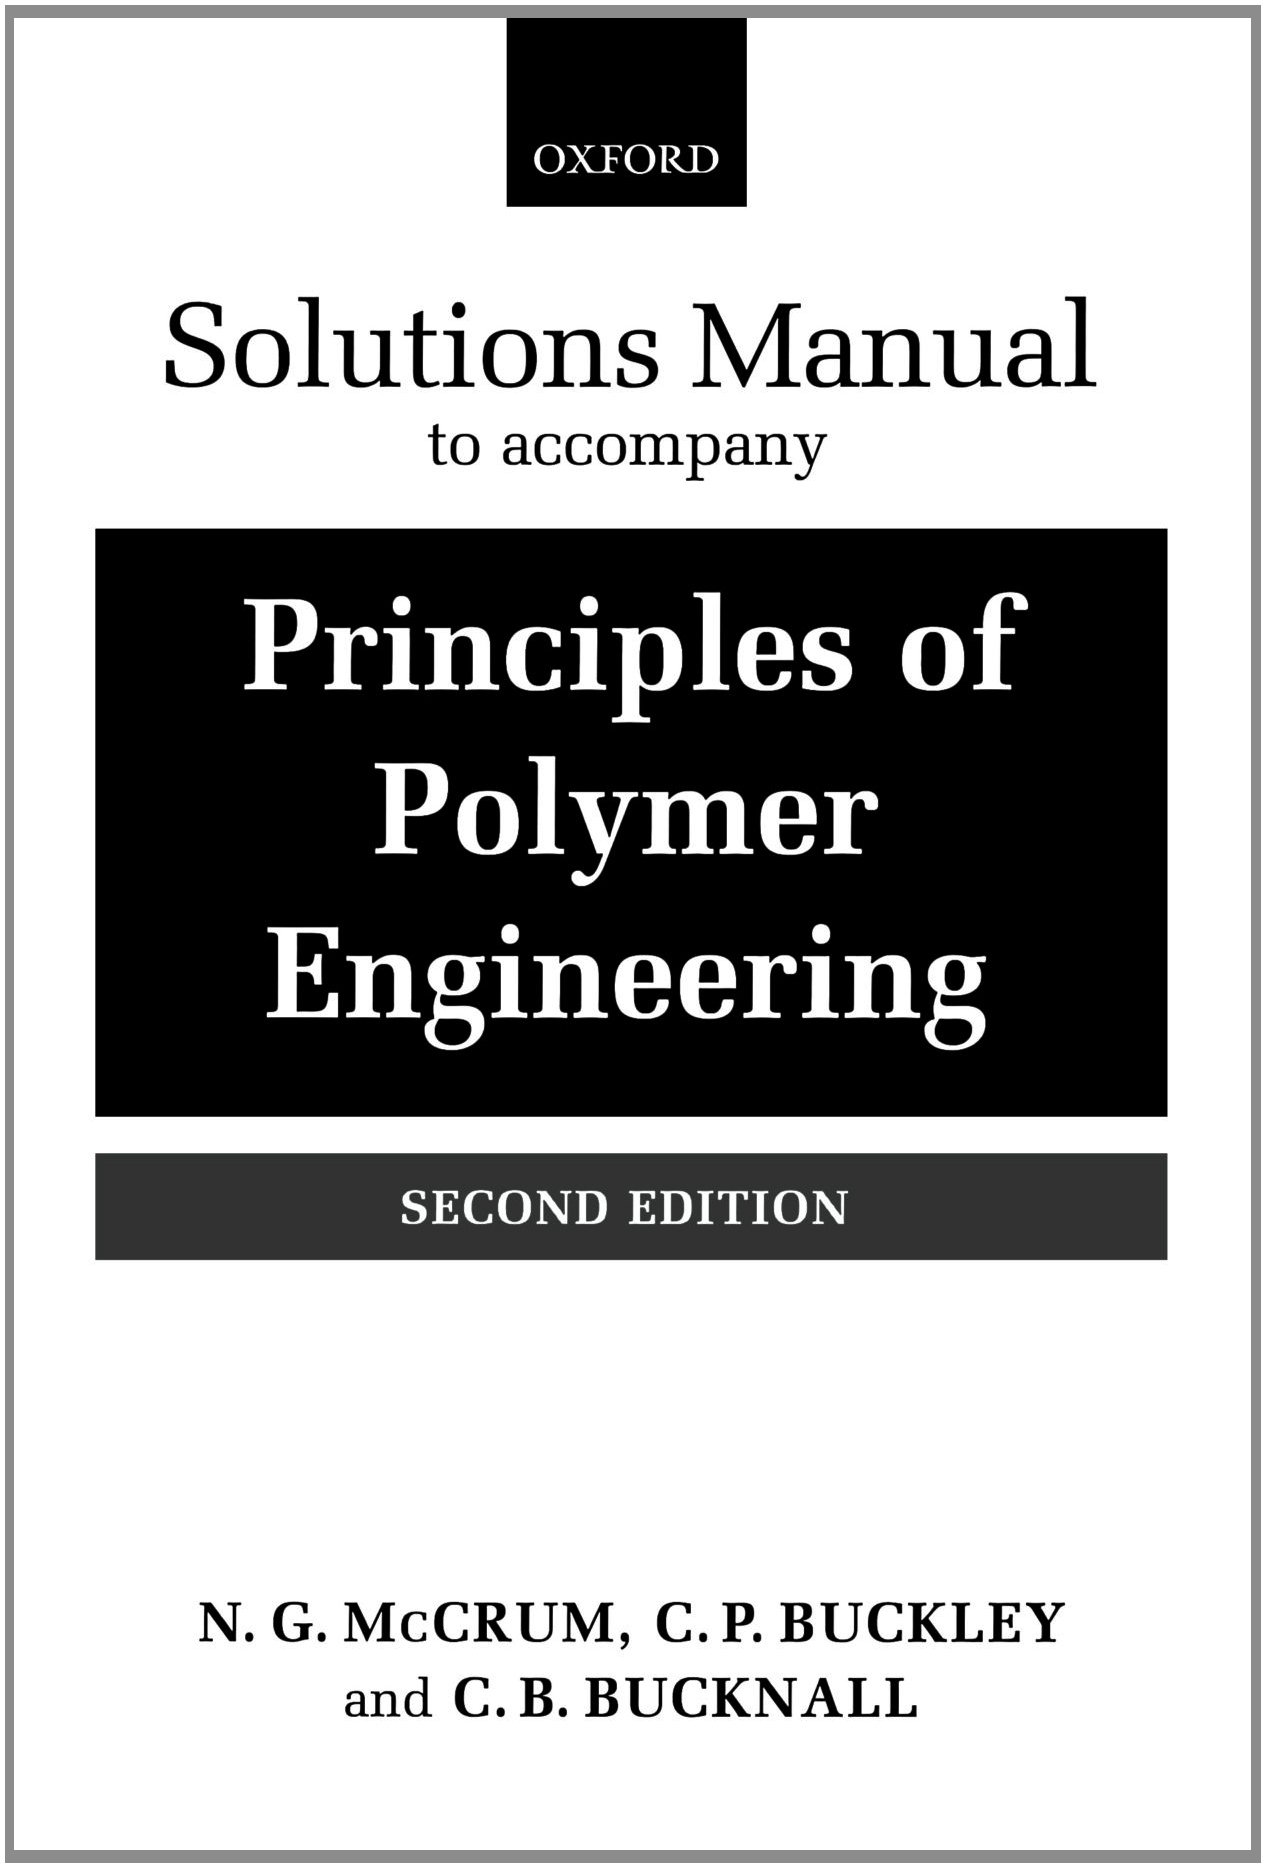 Buy Principles of Polymer Engineering: Solutions Manual Book Online at Low  Prices in India | Principles of Polymer Engineering: Solutions Manual  Reviews ...